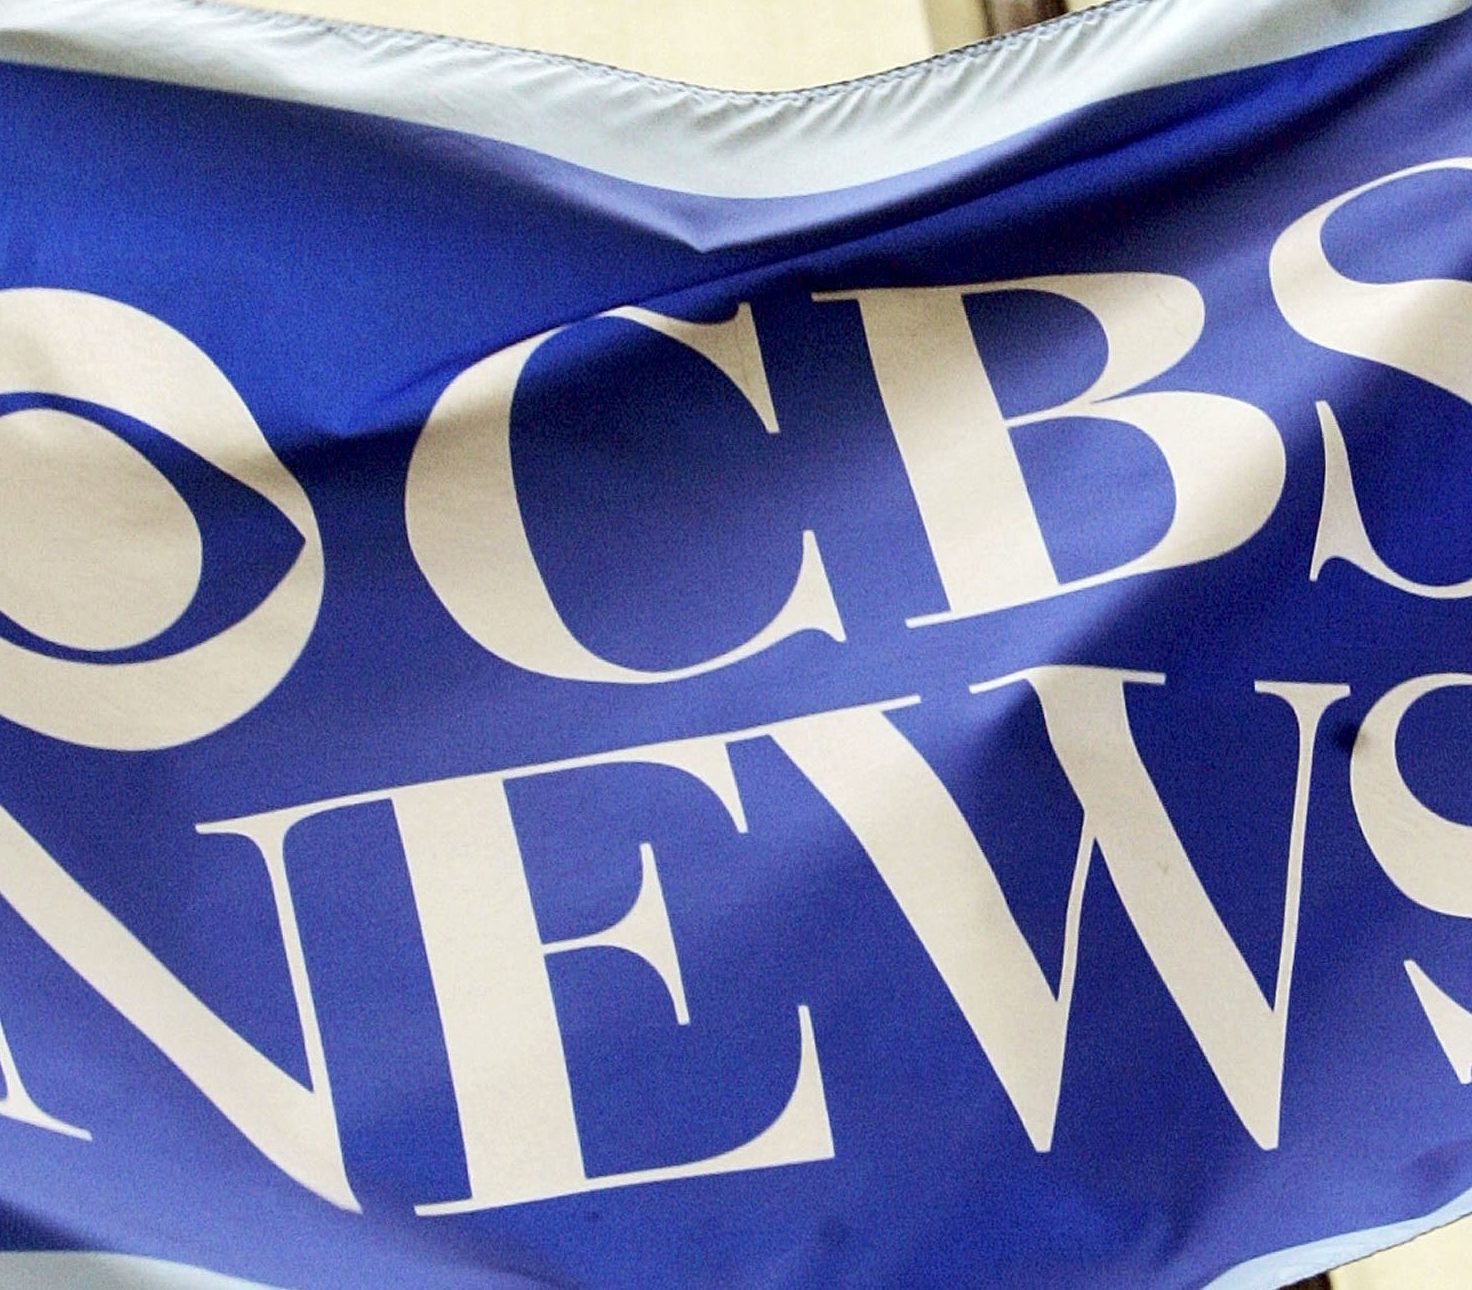 NEW YORK - JUNE 20: A flag is seen outside CBS News headquarters June 20, 2006 in New York City. CBS announced that Dan Rather is leaving the network after 44 years, following his departure as anchorman last year. (Photo by Mario Tama/Getty Images)